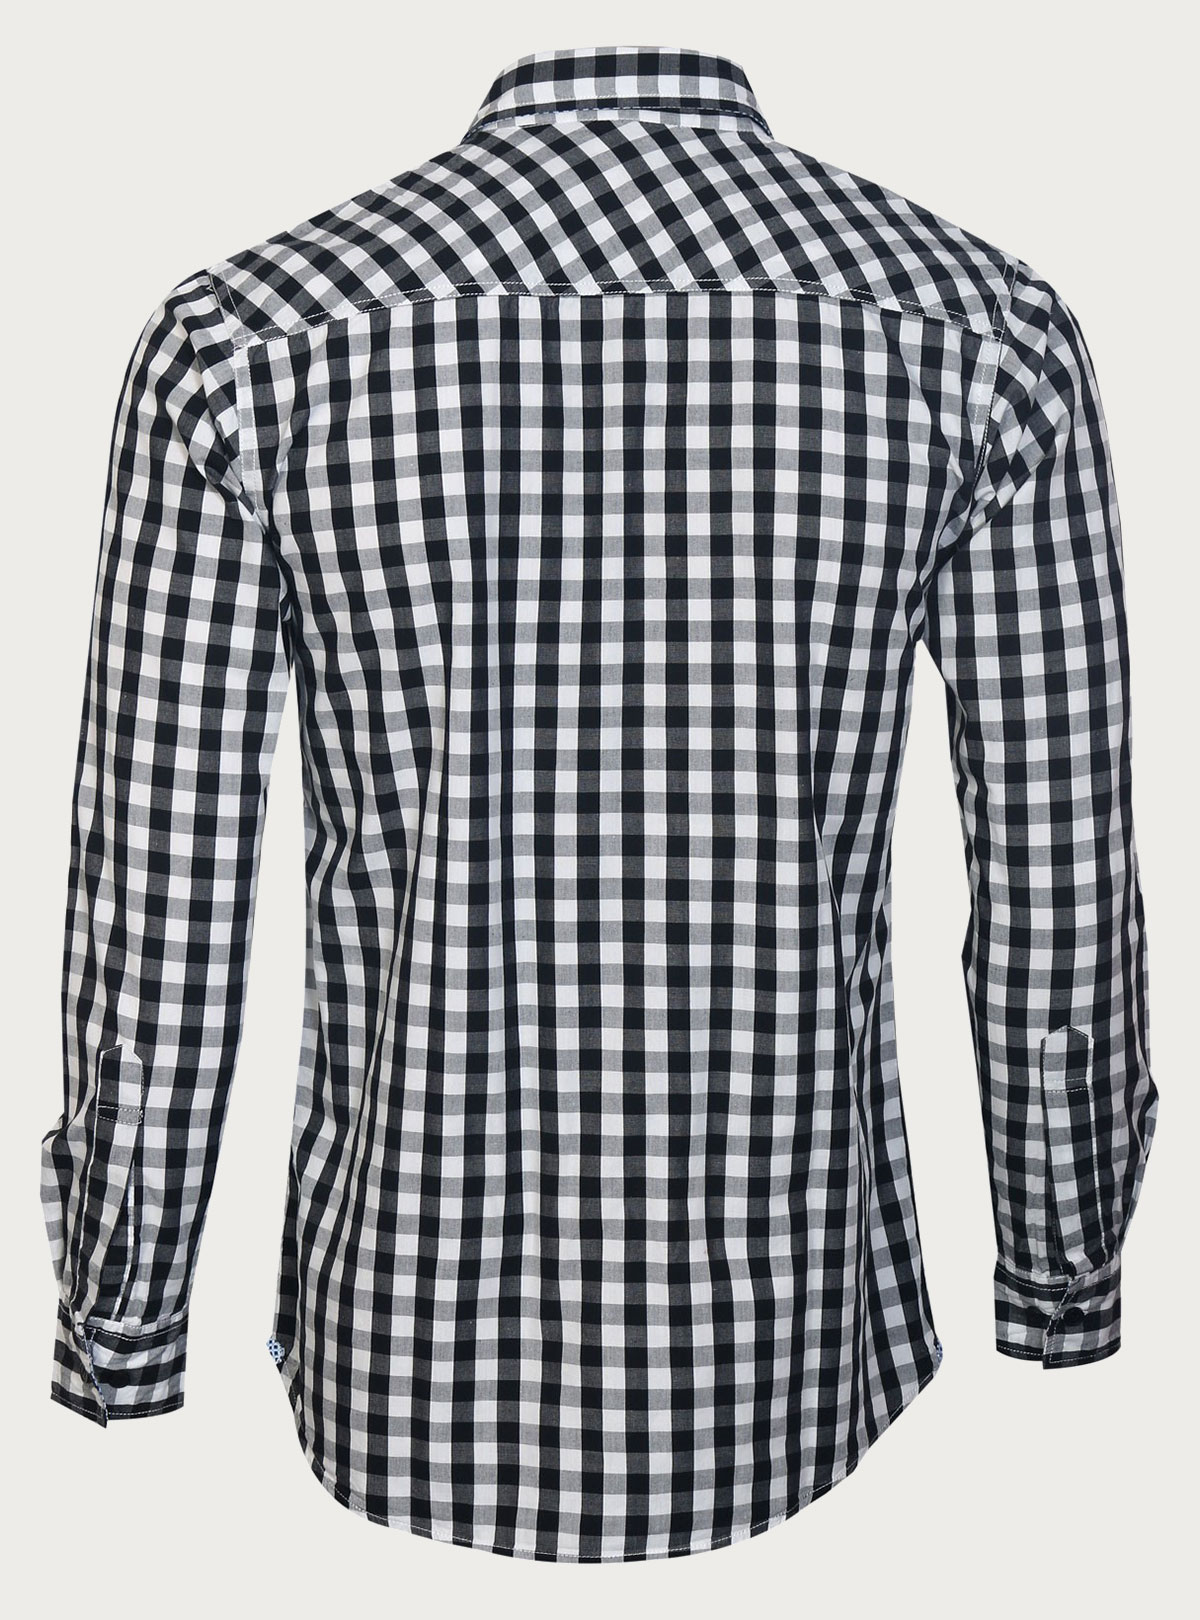 STYLISH CASUAL SHIRT BY-JACK &  JONES